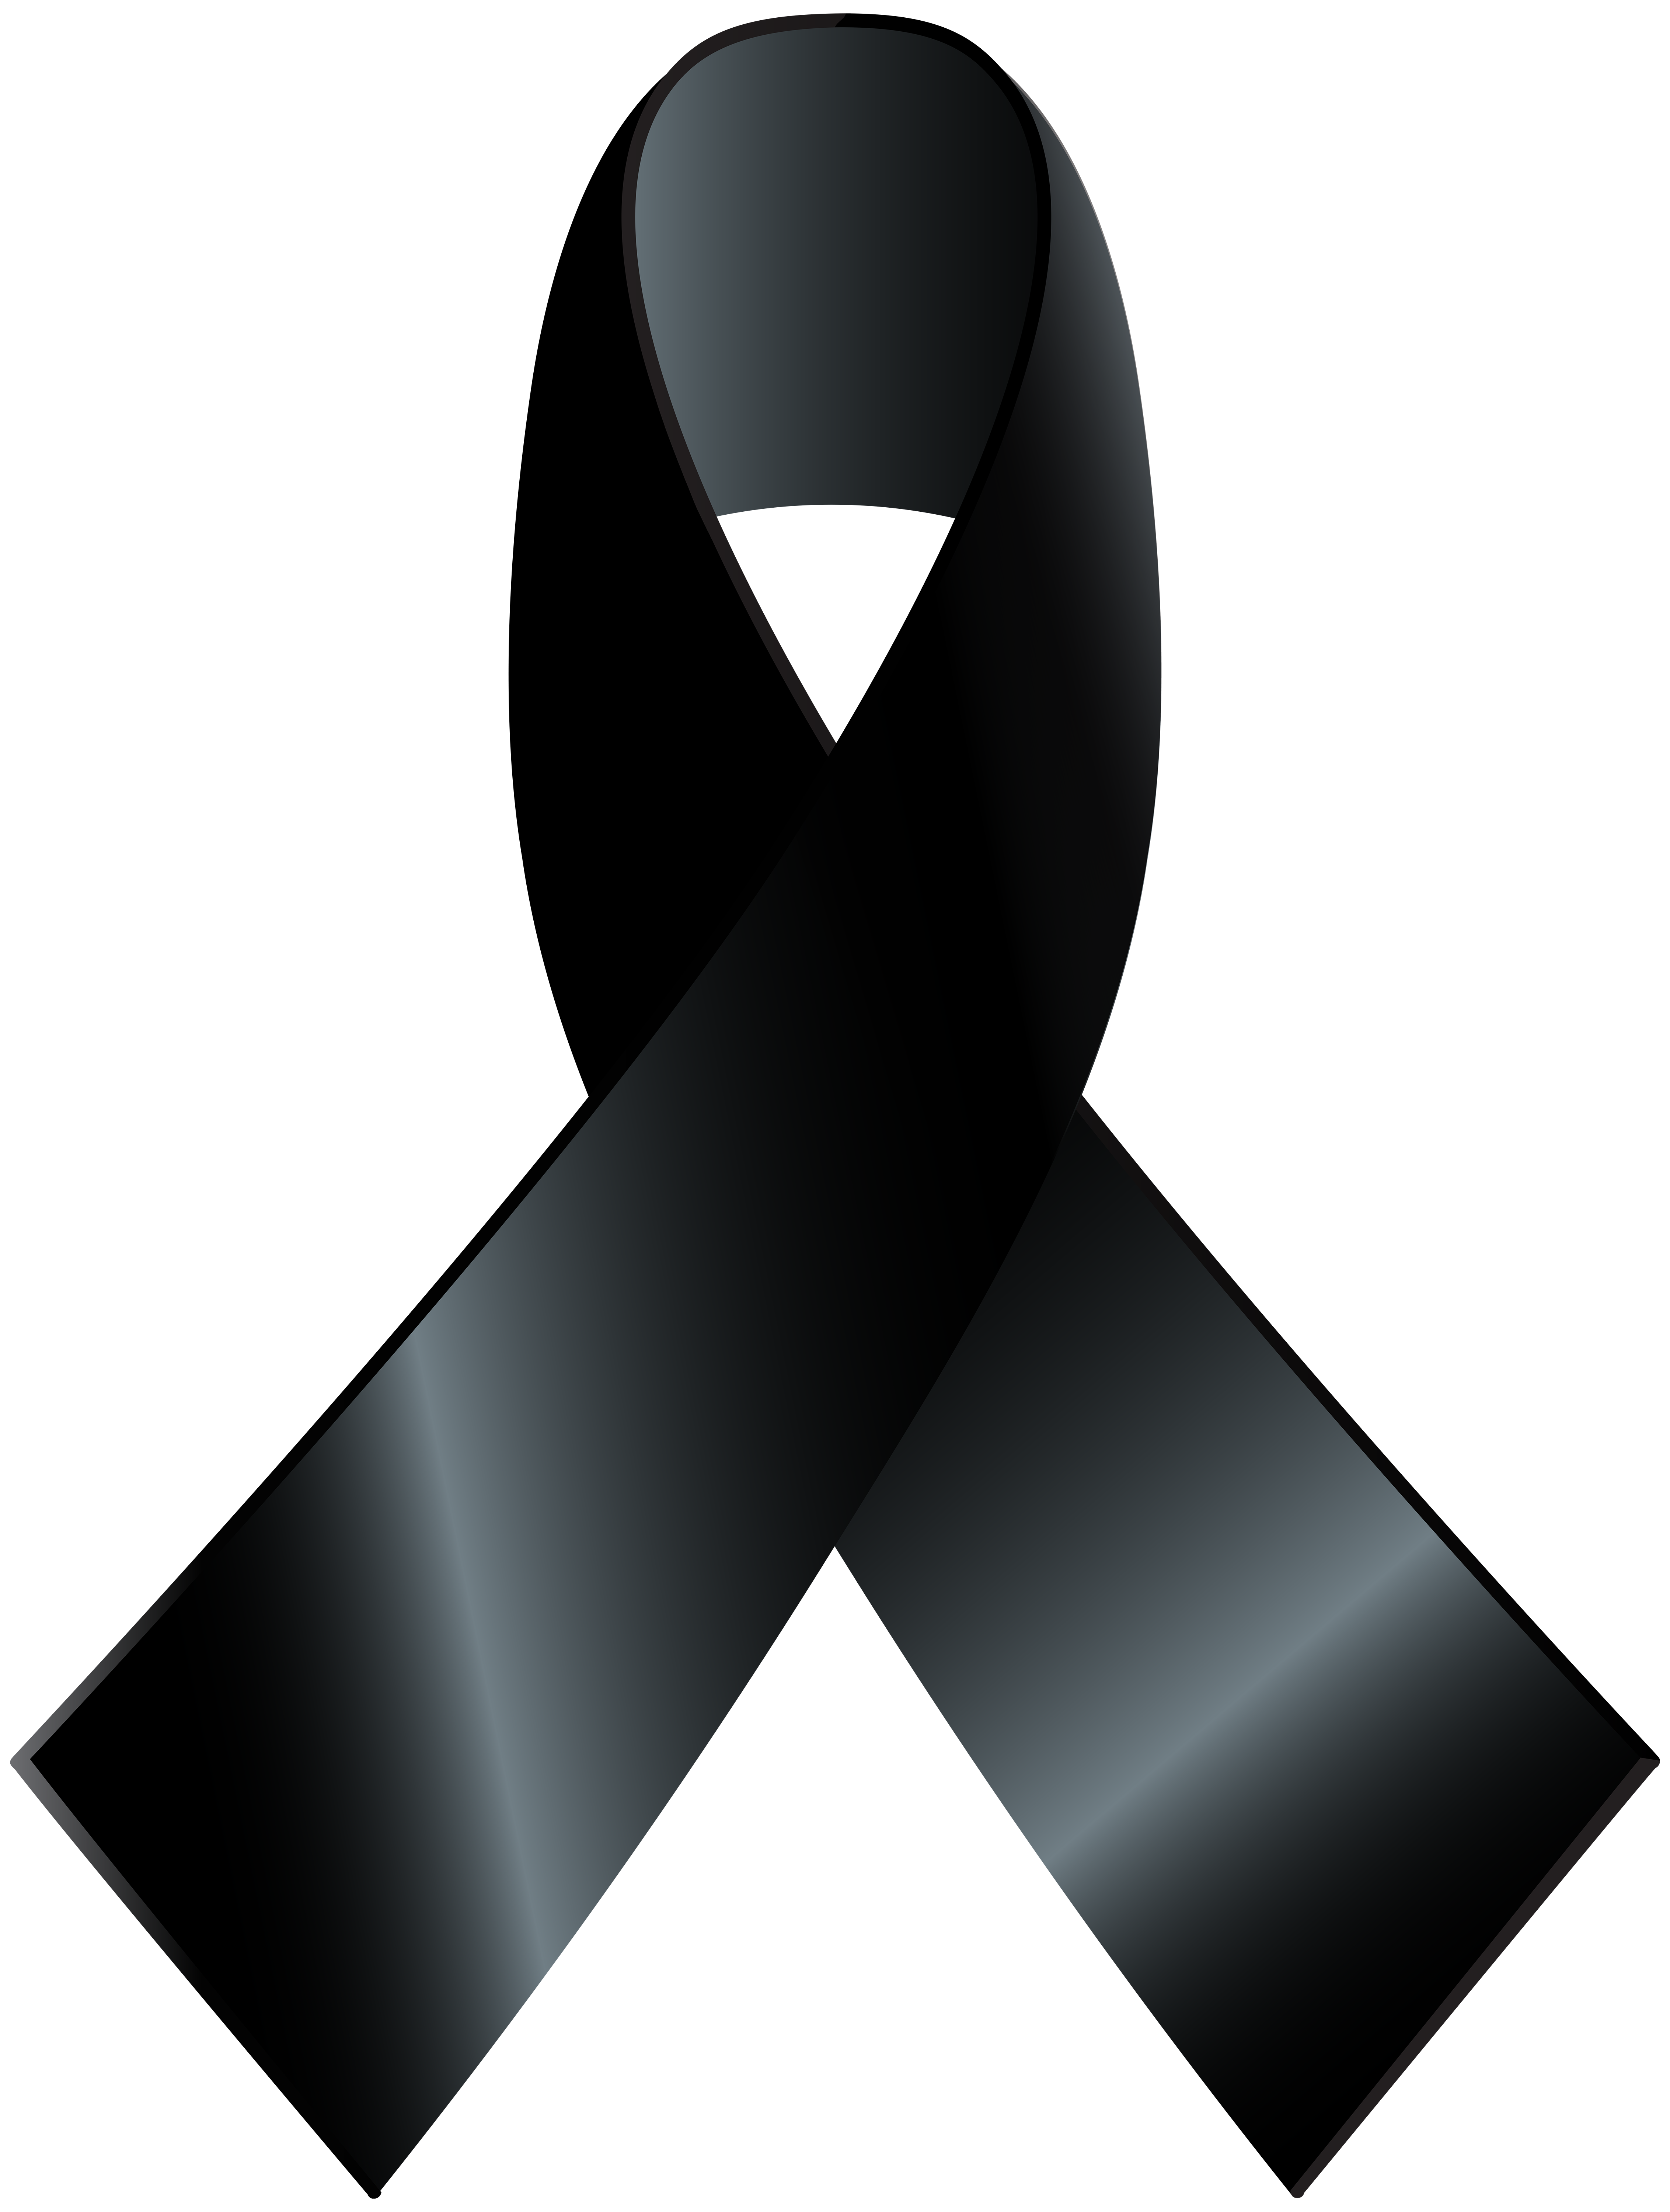 Black Awareness Ribbon PNG Clip Art.